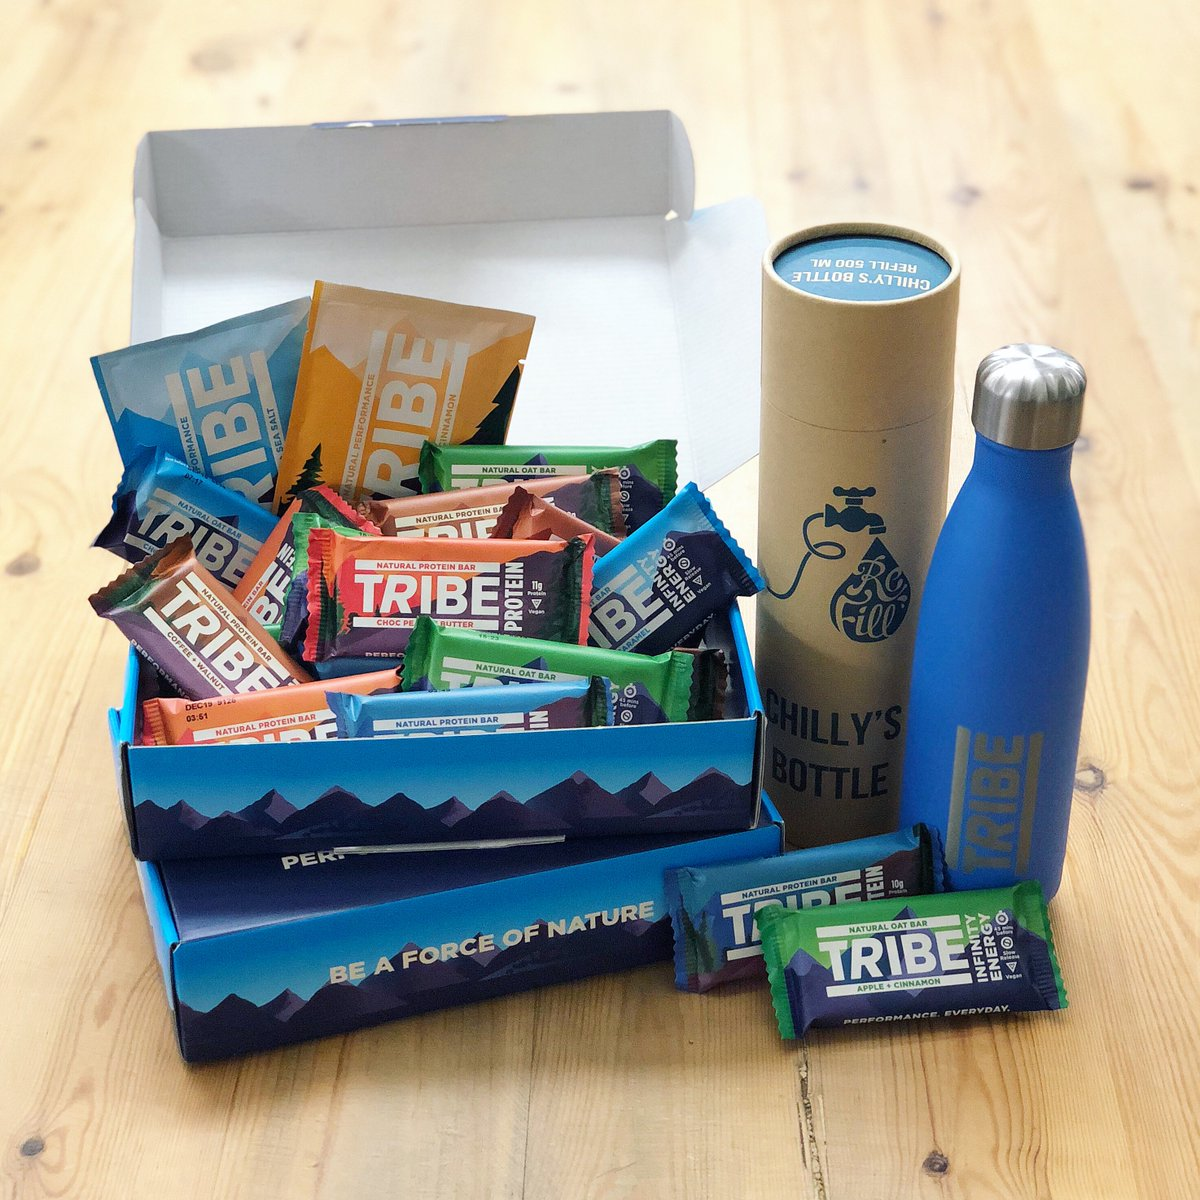 🎉 GIVEAWAY 🎉 Fuel your summer with an awesome selection of TRIBE nutrition bars 💪 Plus a TRIBE X Chilly's bottle, perfect for the upcoming heat🤞! To enter:  1) Follow @greenjinn @the_tribe_way  2) Like & RT to win 😋!  Good luck! Ends 23/06 https://greenjinn.com/blog/tribe-giveaway/…